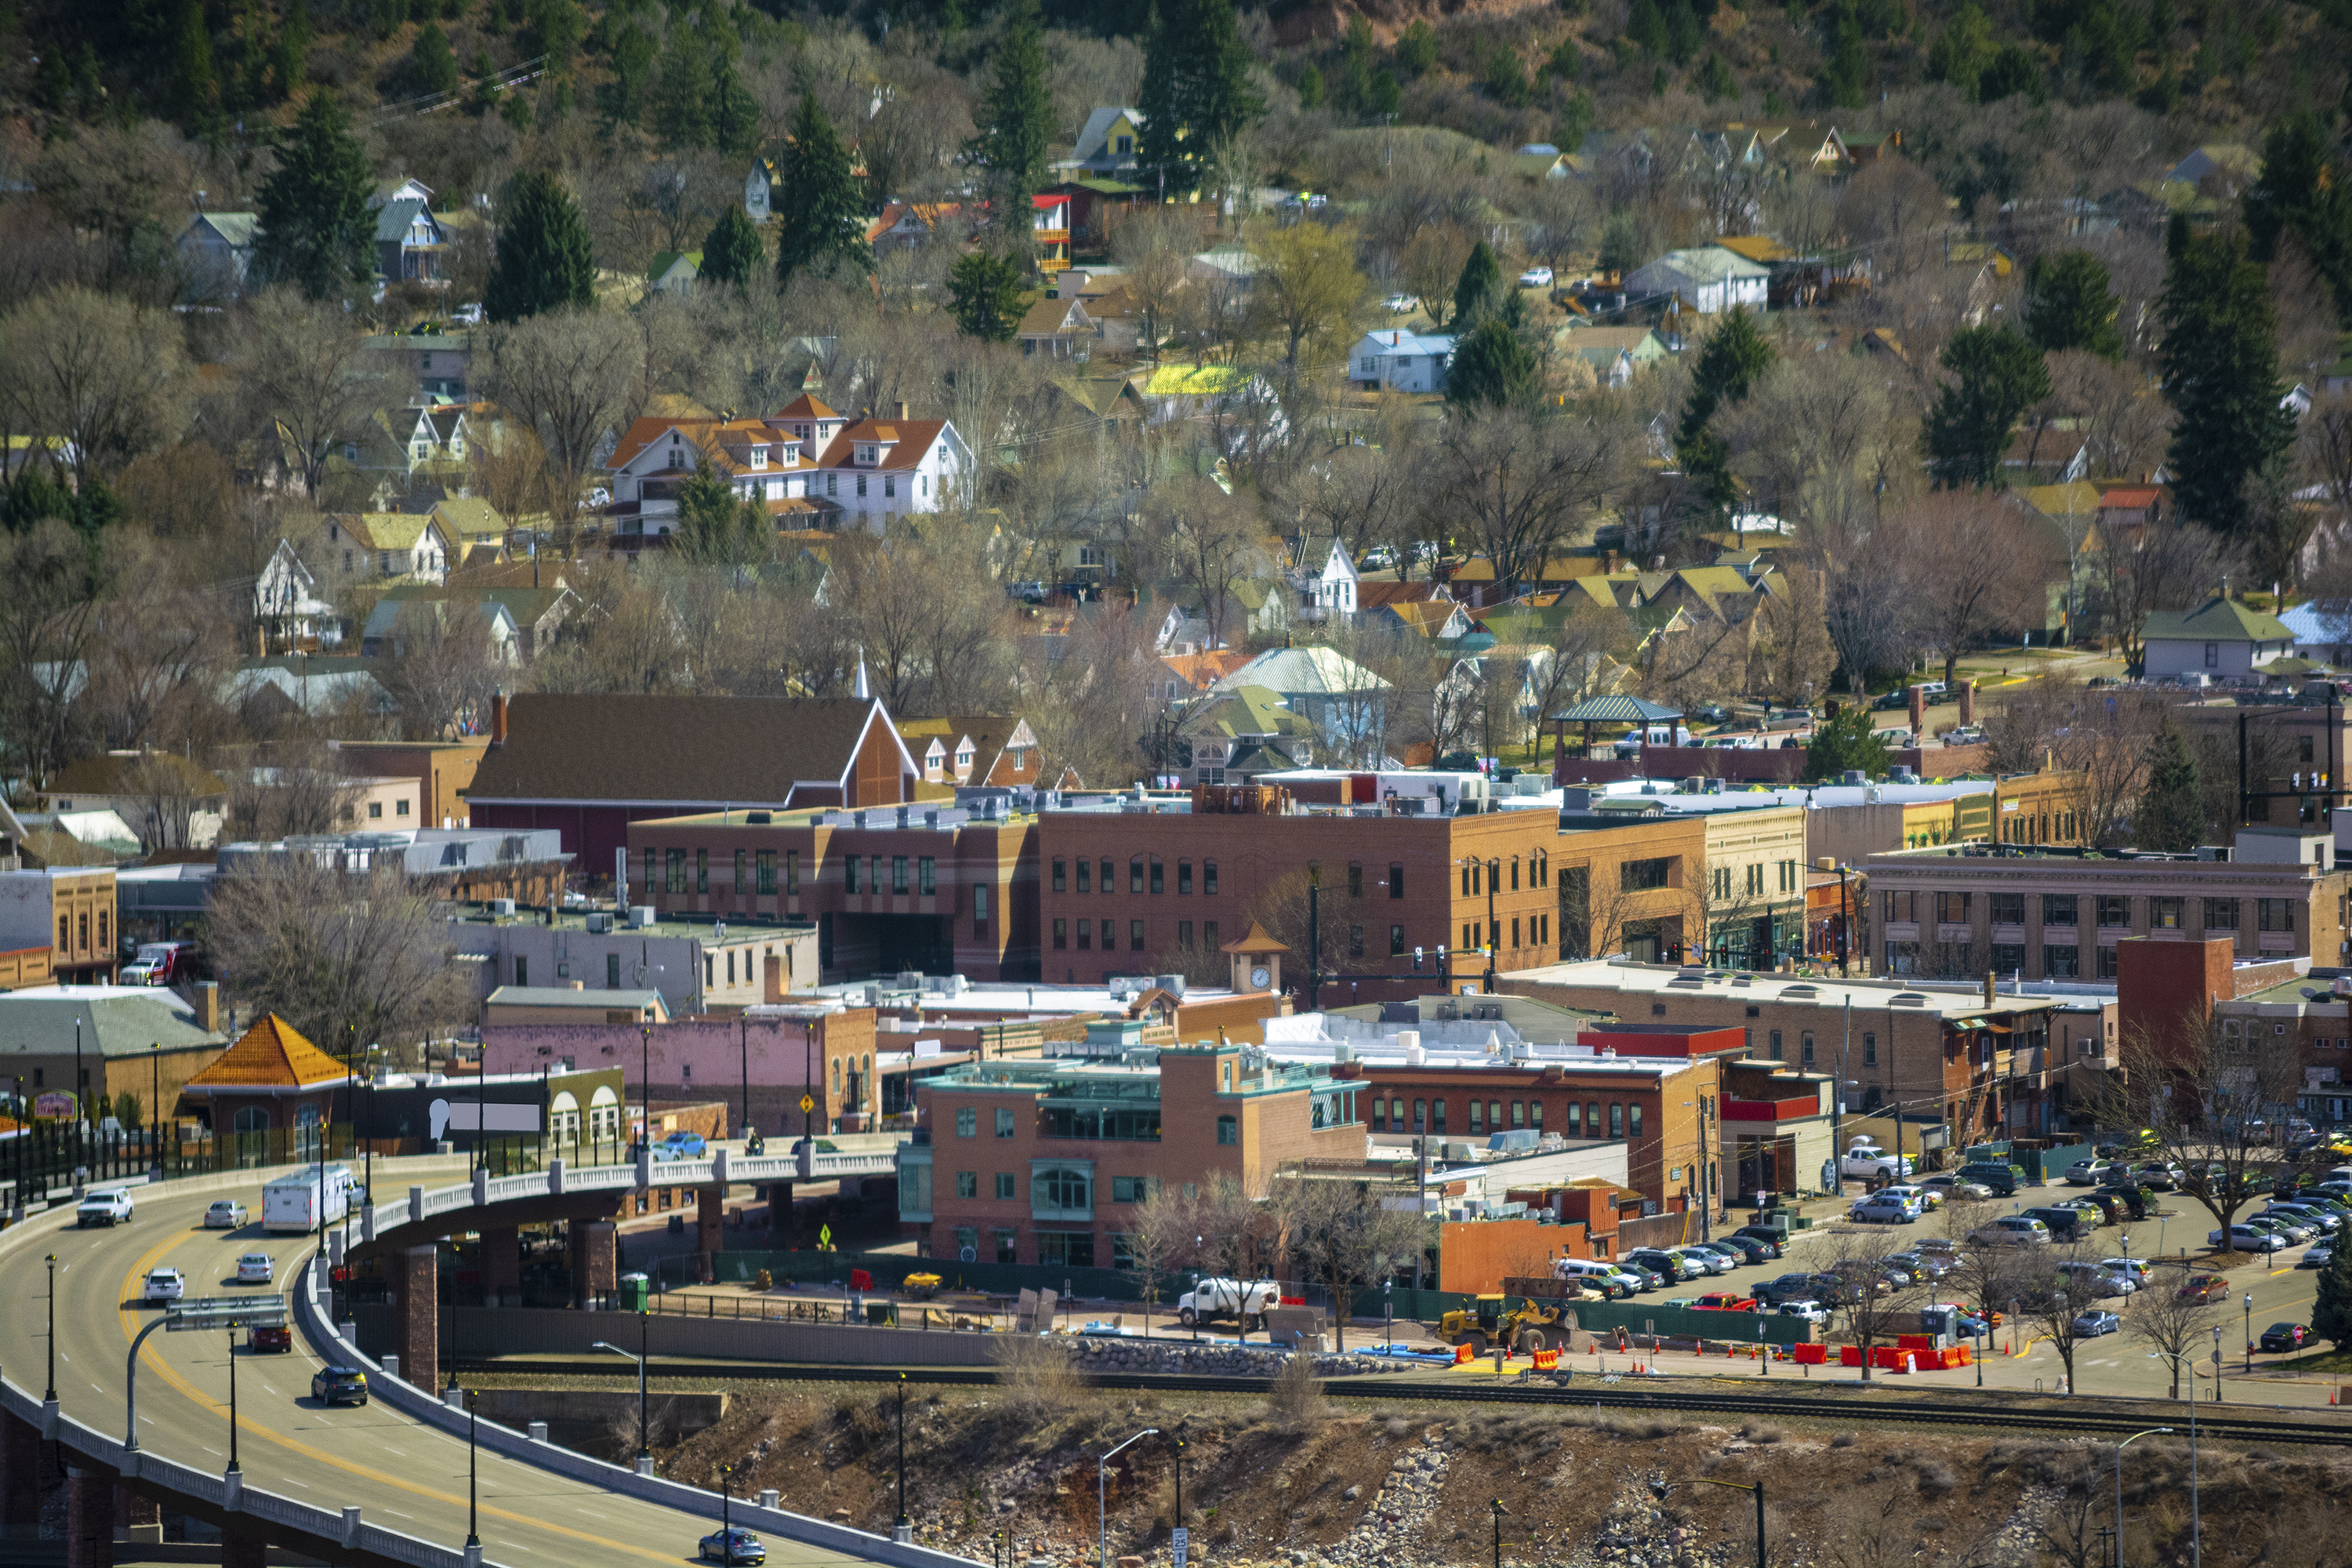 Downtown Glenwood Springs, Colorado on a Sunny Day